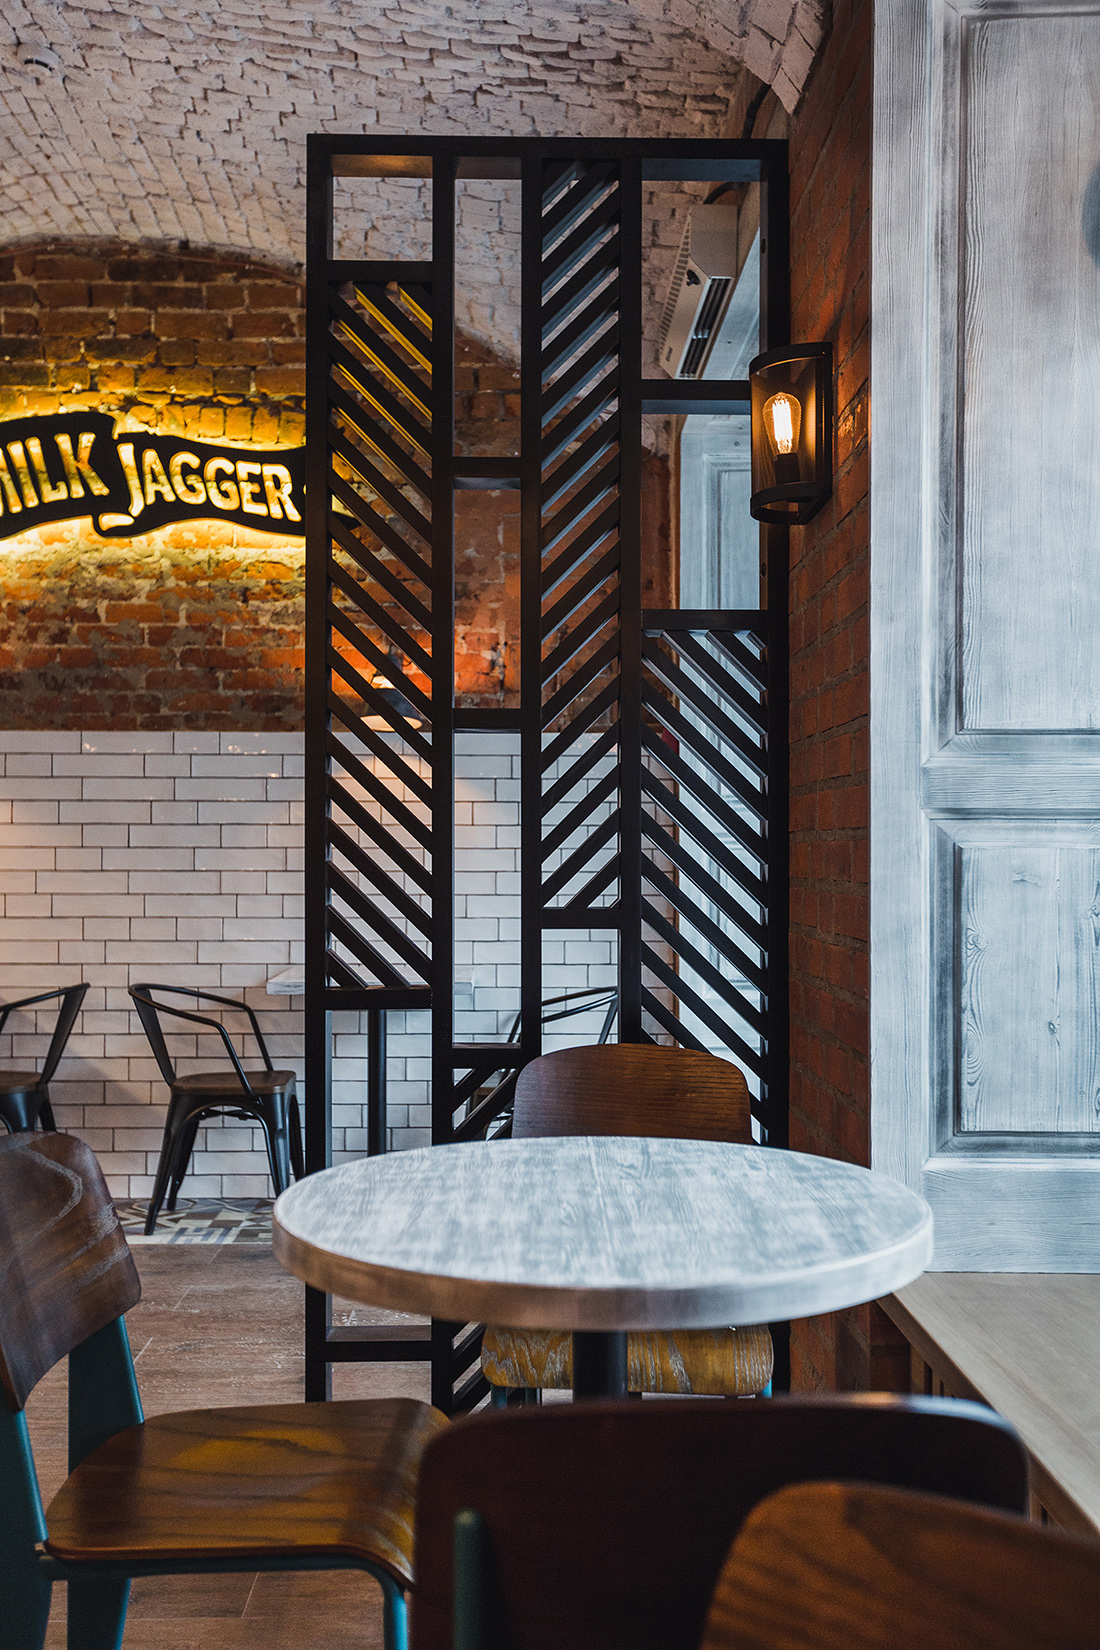 Milk Jagger coffee interior